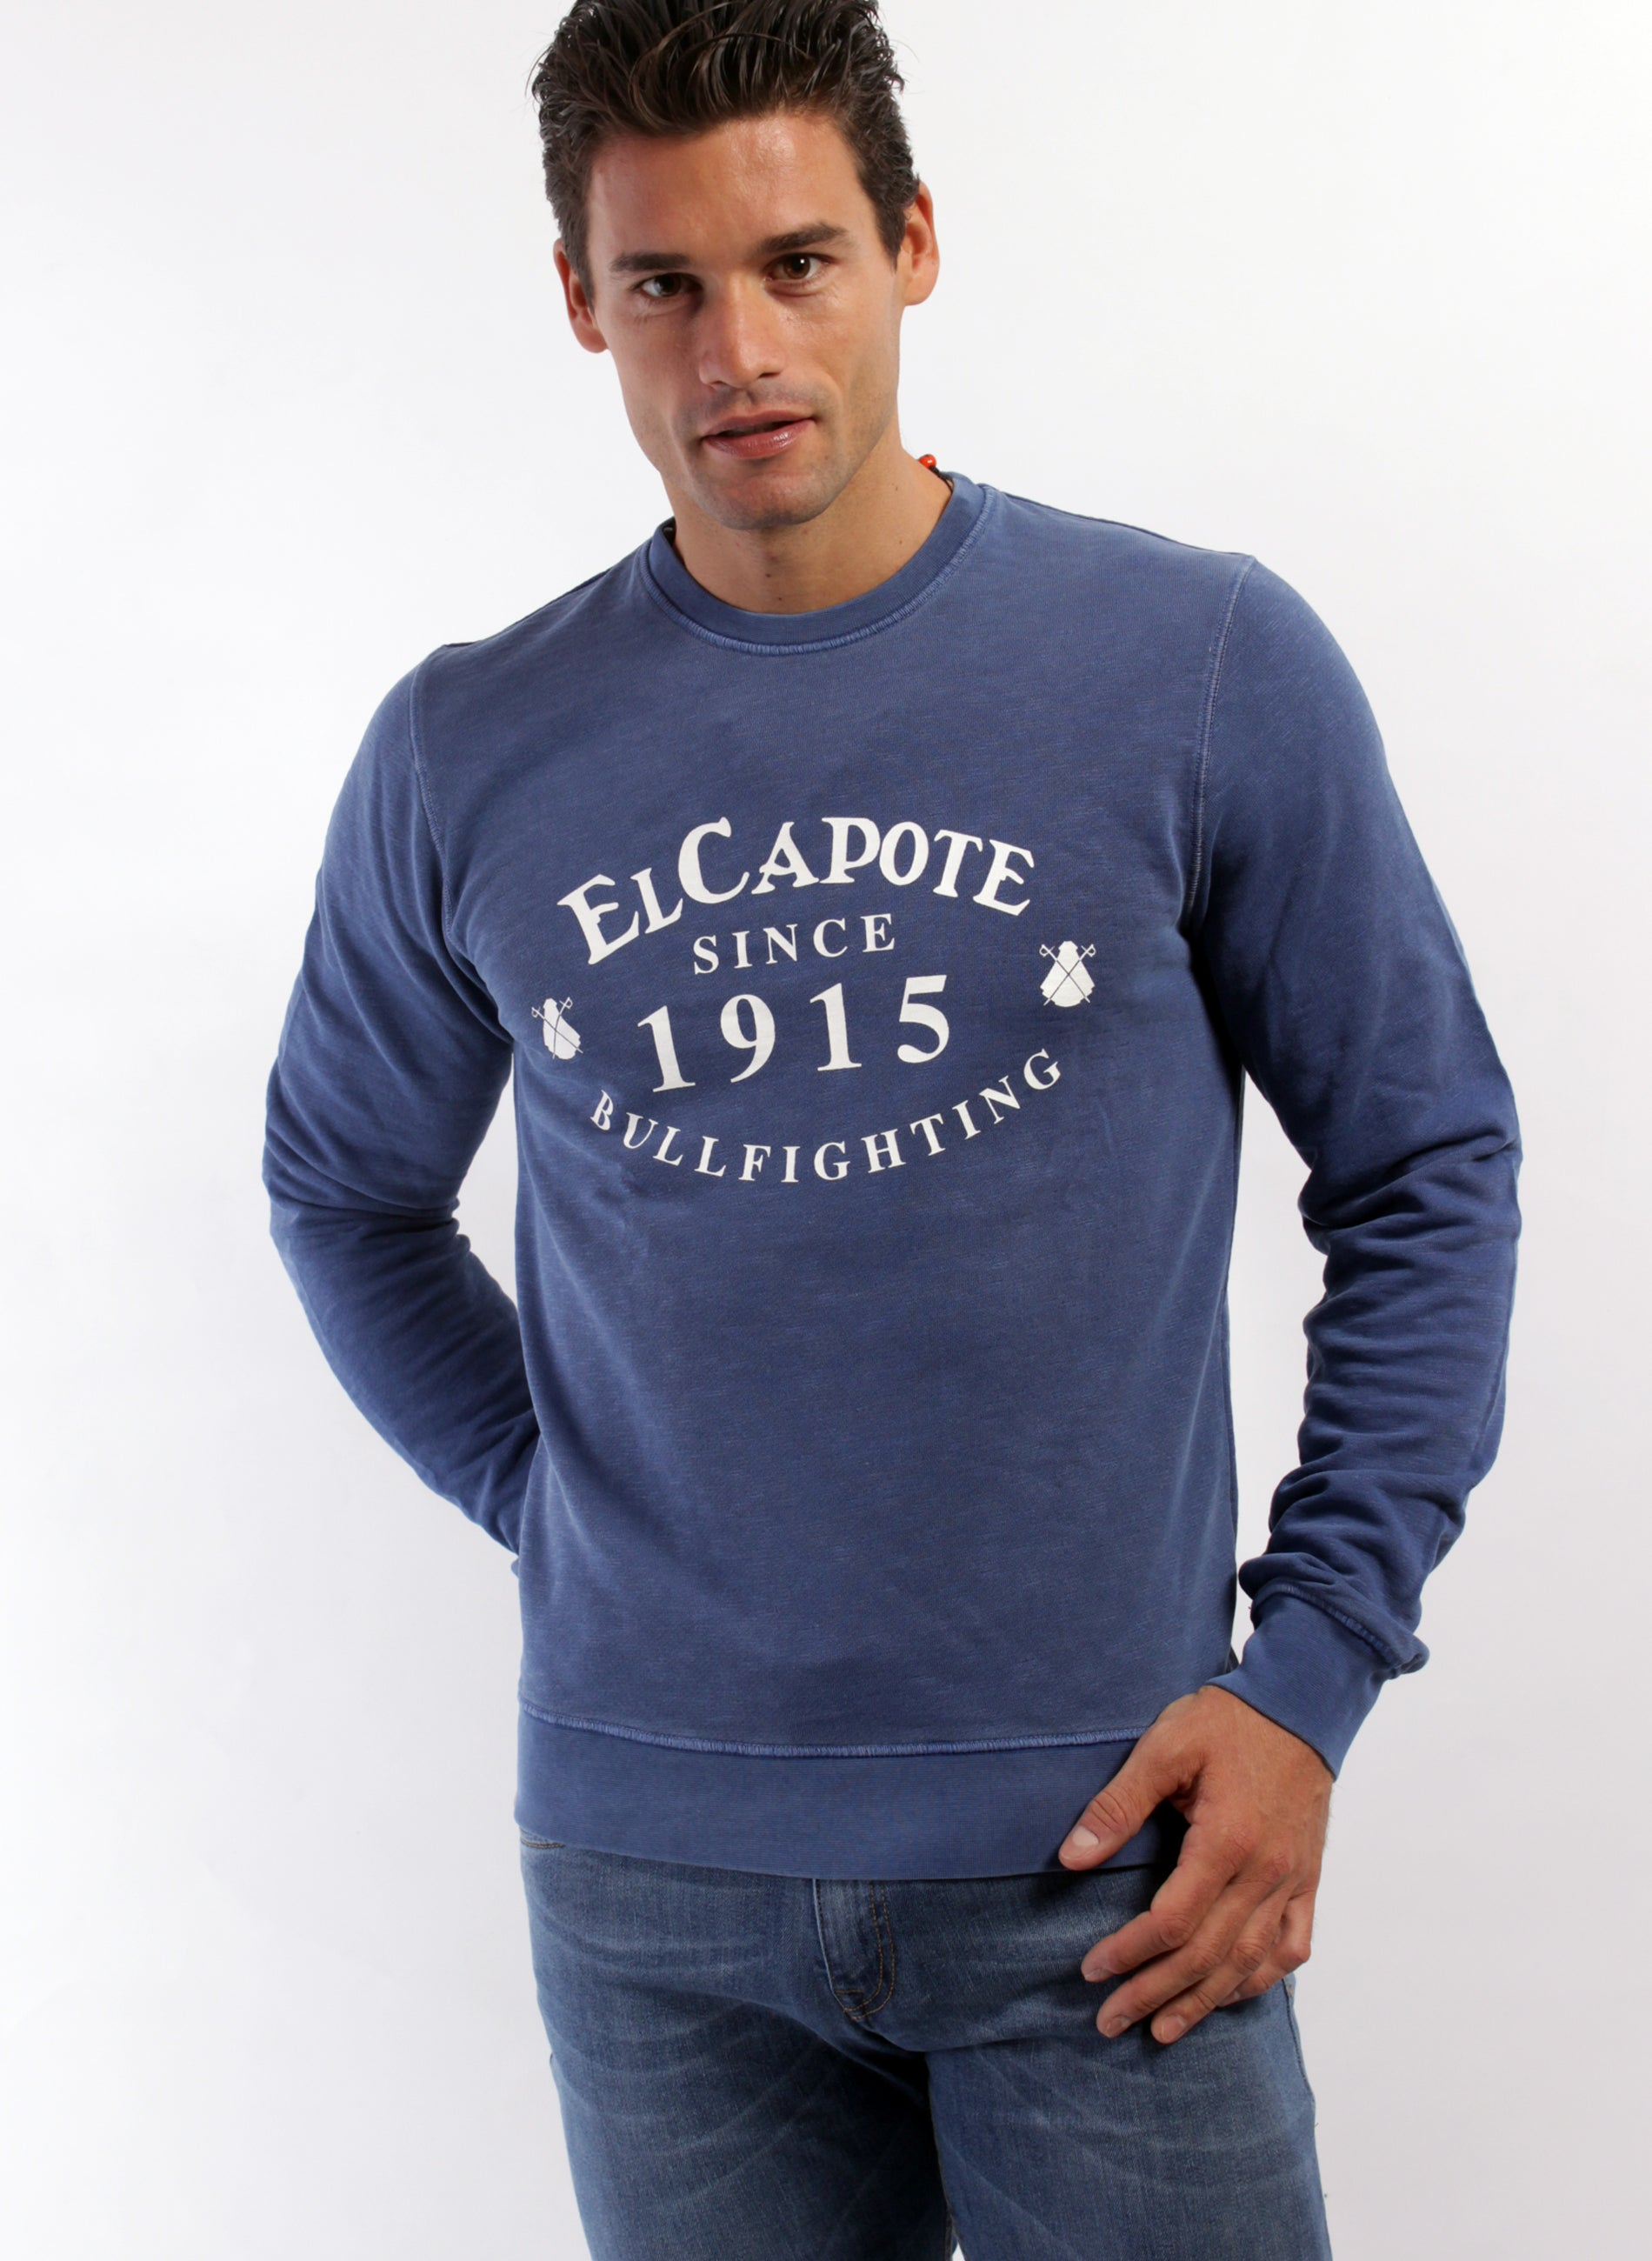 Indigo Blue Sweatshirt